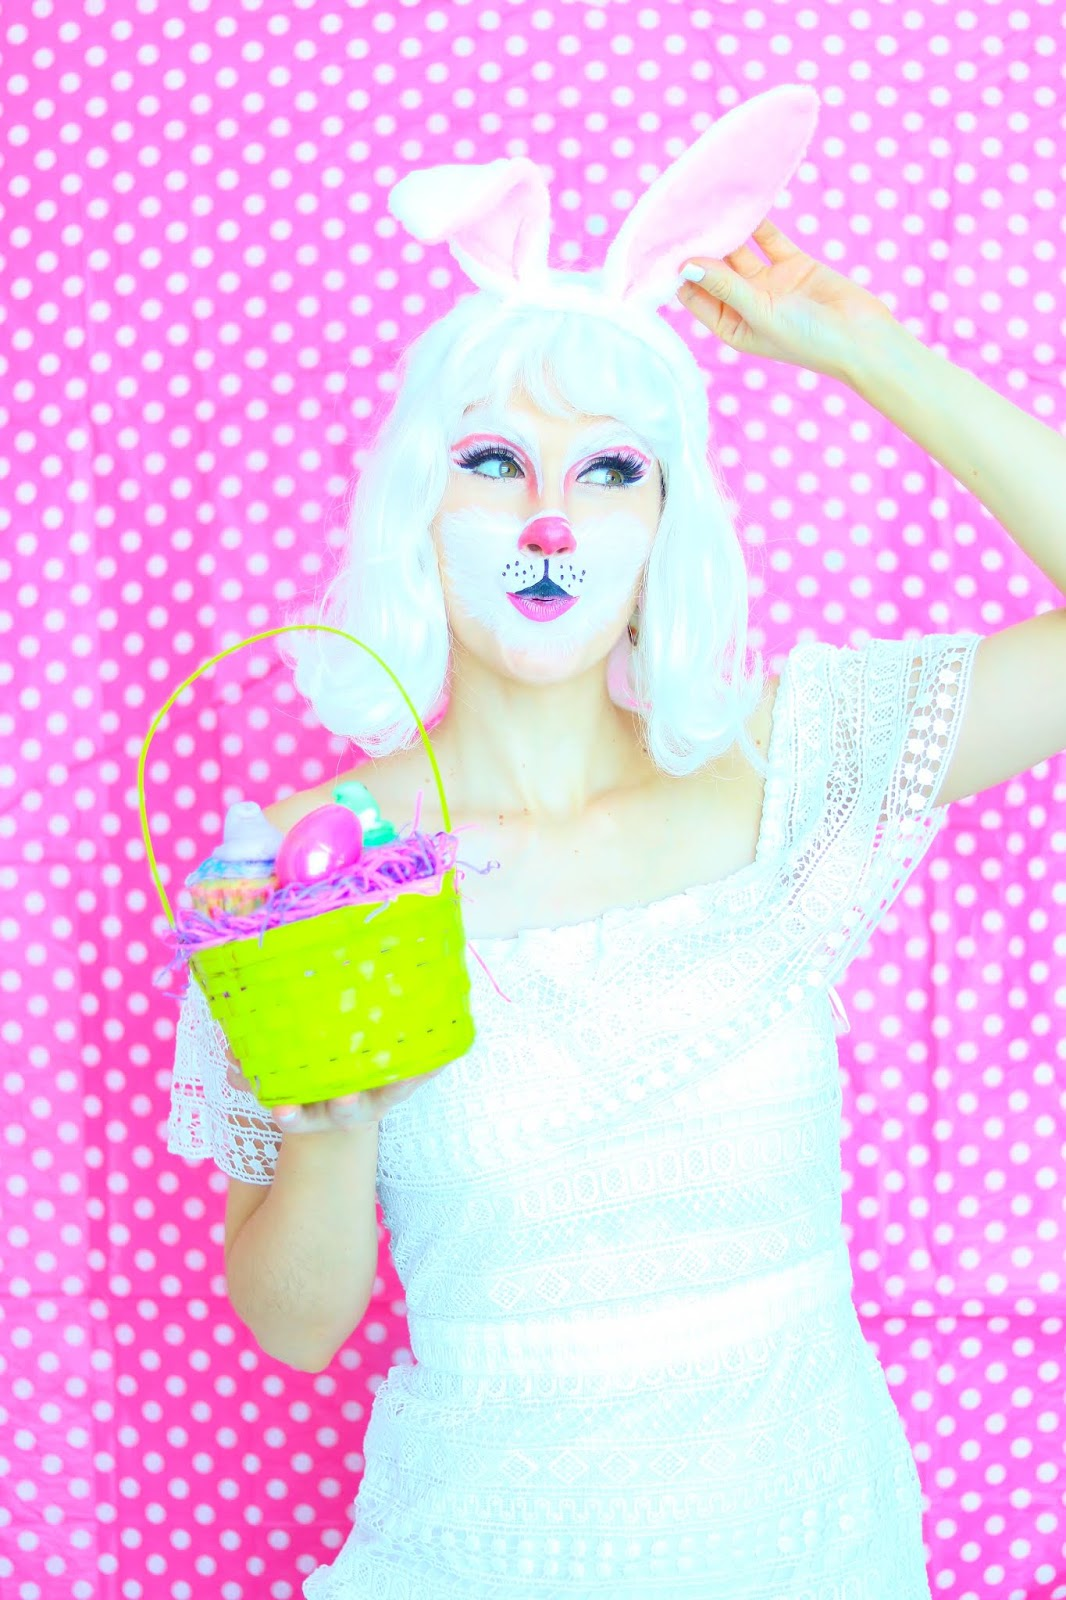 Cute Easter Photoshoot